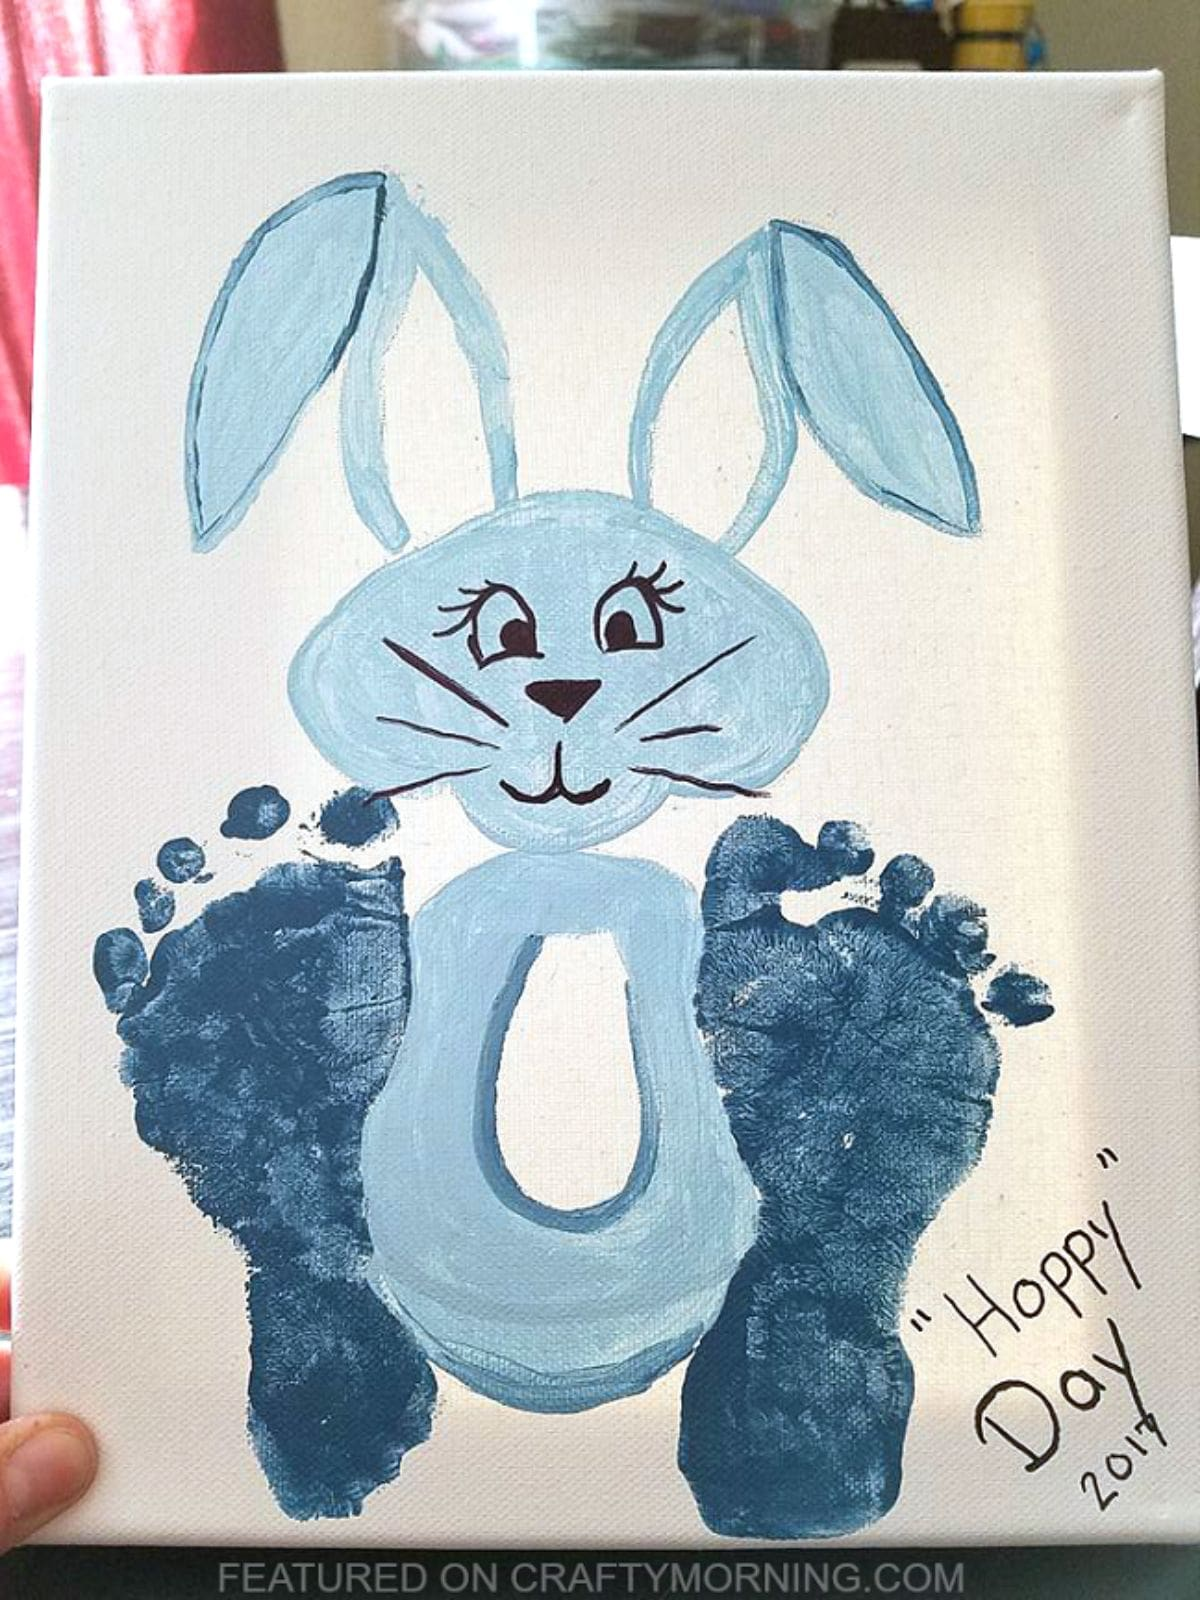 A blue bunny picture with baby footprints as its feet